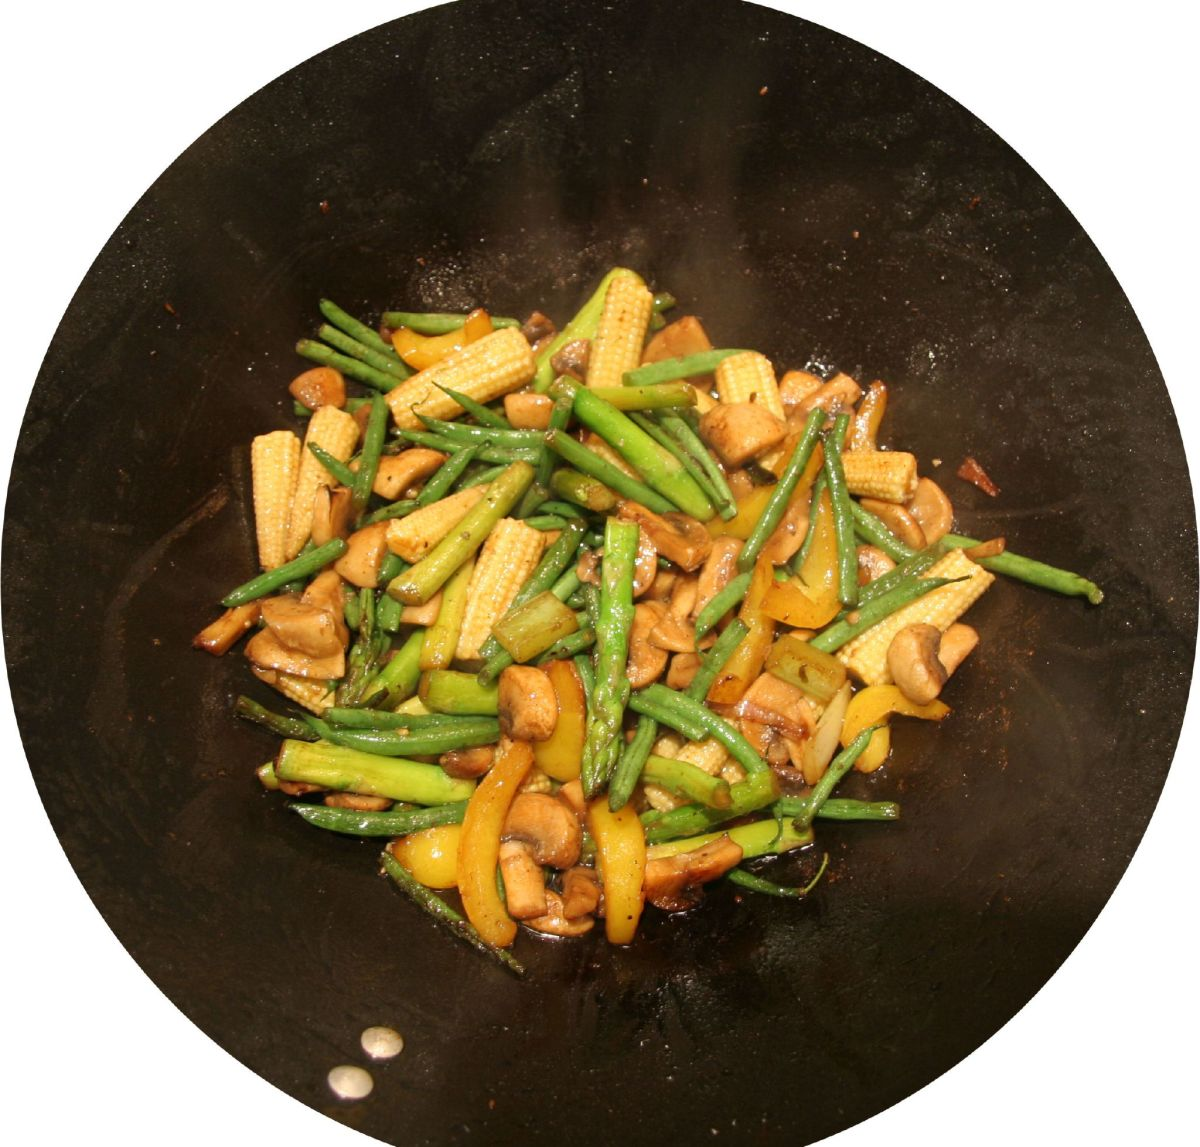 Chinese Stir-fried Snow Peas, Water Chestnuts and Bamboo Shoots